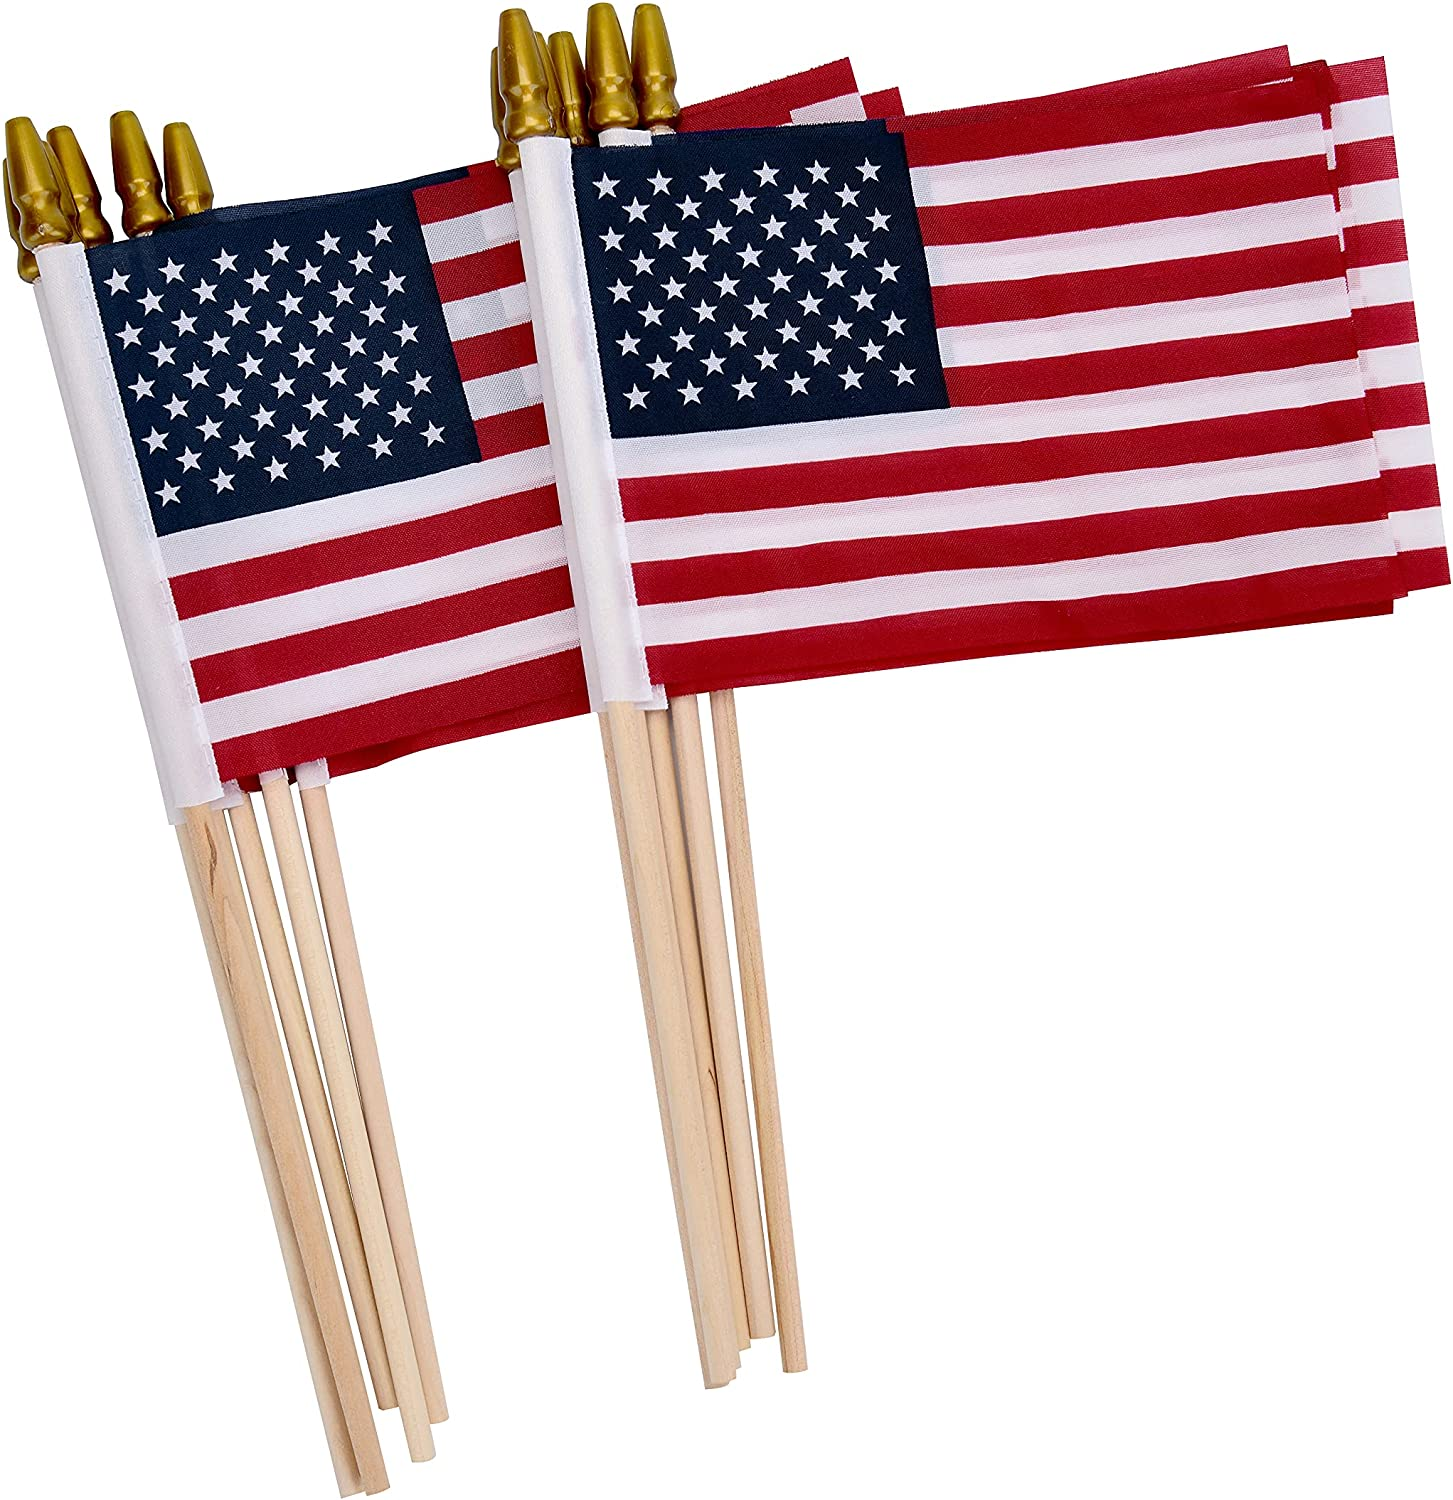 Uelfbaby 12 Pack Small American Flags on Stick, Small US Flags/Mini American Flag on Stick 4x6 Inch US American Hand Held Stick Flags with Kid-Safe Spear Top, Polyester Full Color Tear-Resistant Flag